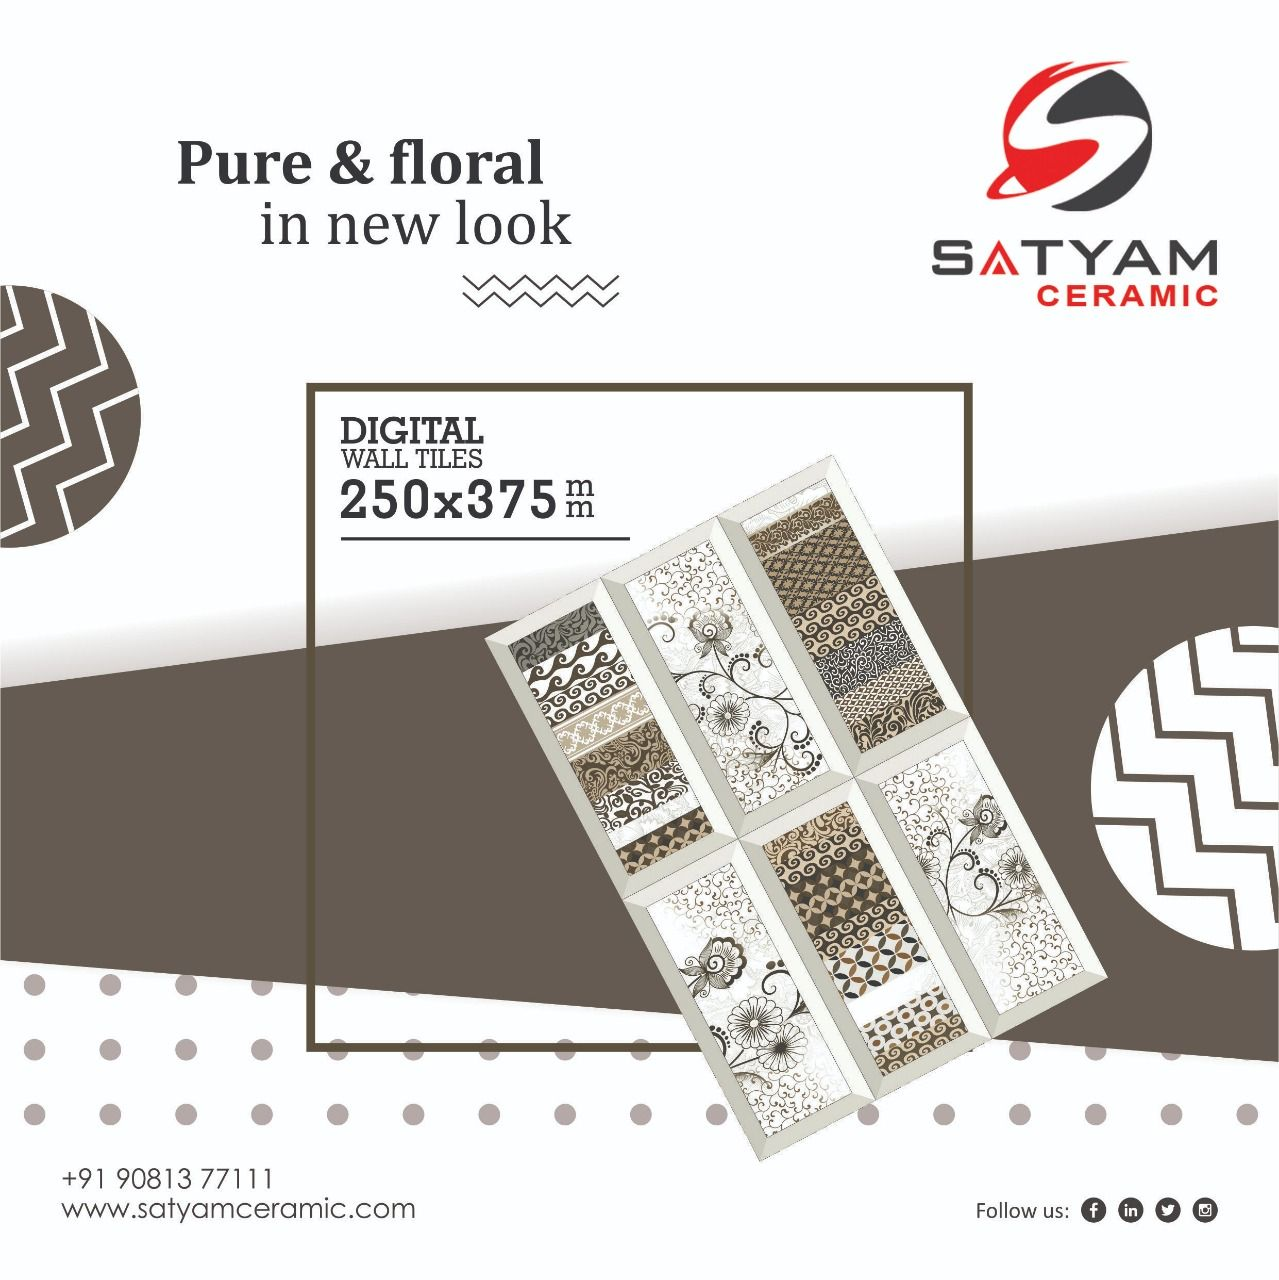 Pure Floral In New Look Satyam Ceramic Digital Wall Tiles 250x375 Mm Satyamceramic Satyamtiles Digitalwalltiles Walltil Digital Wall Wall Tiles Tiles